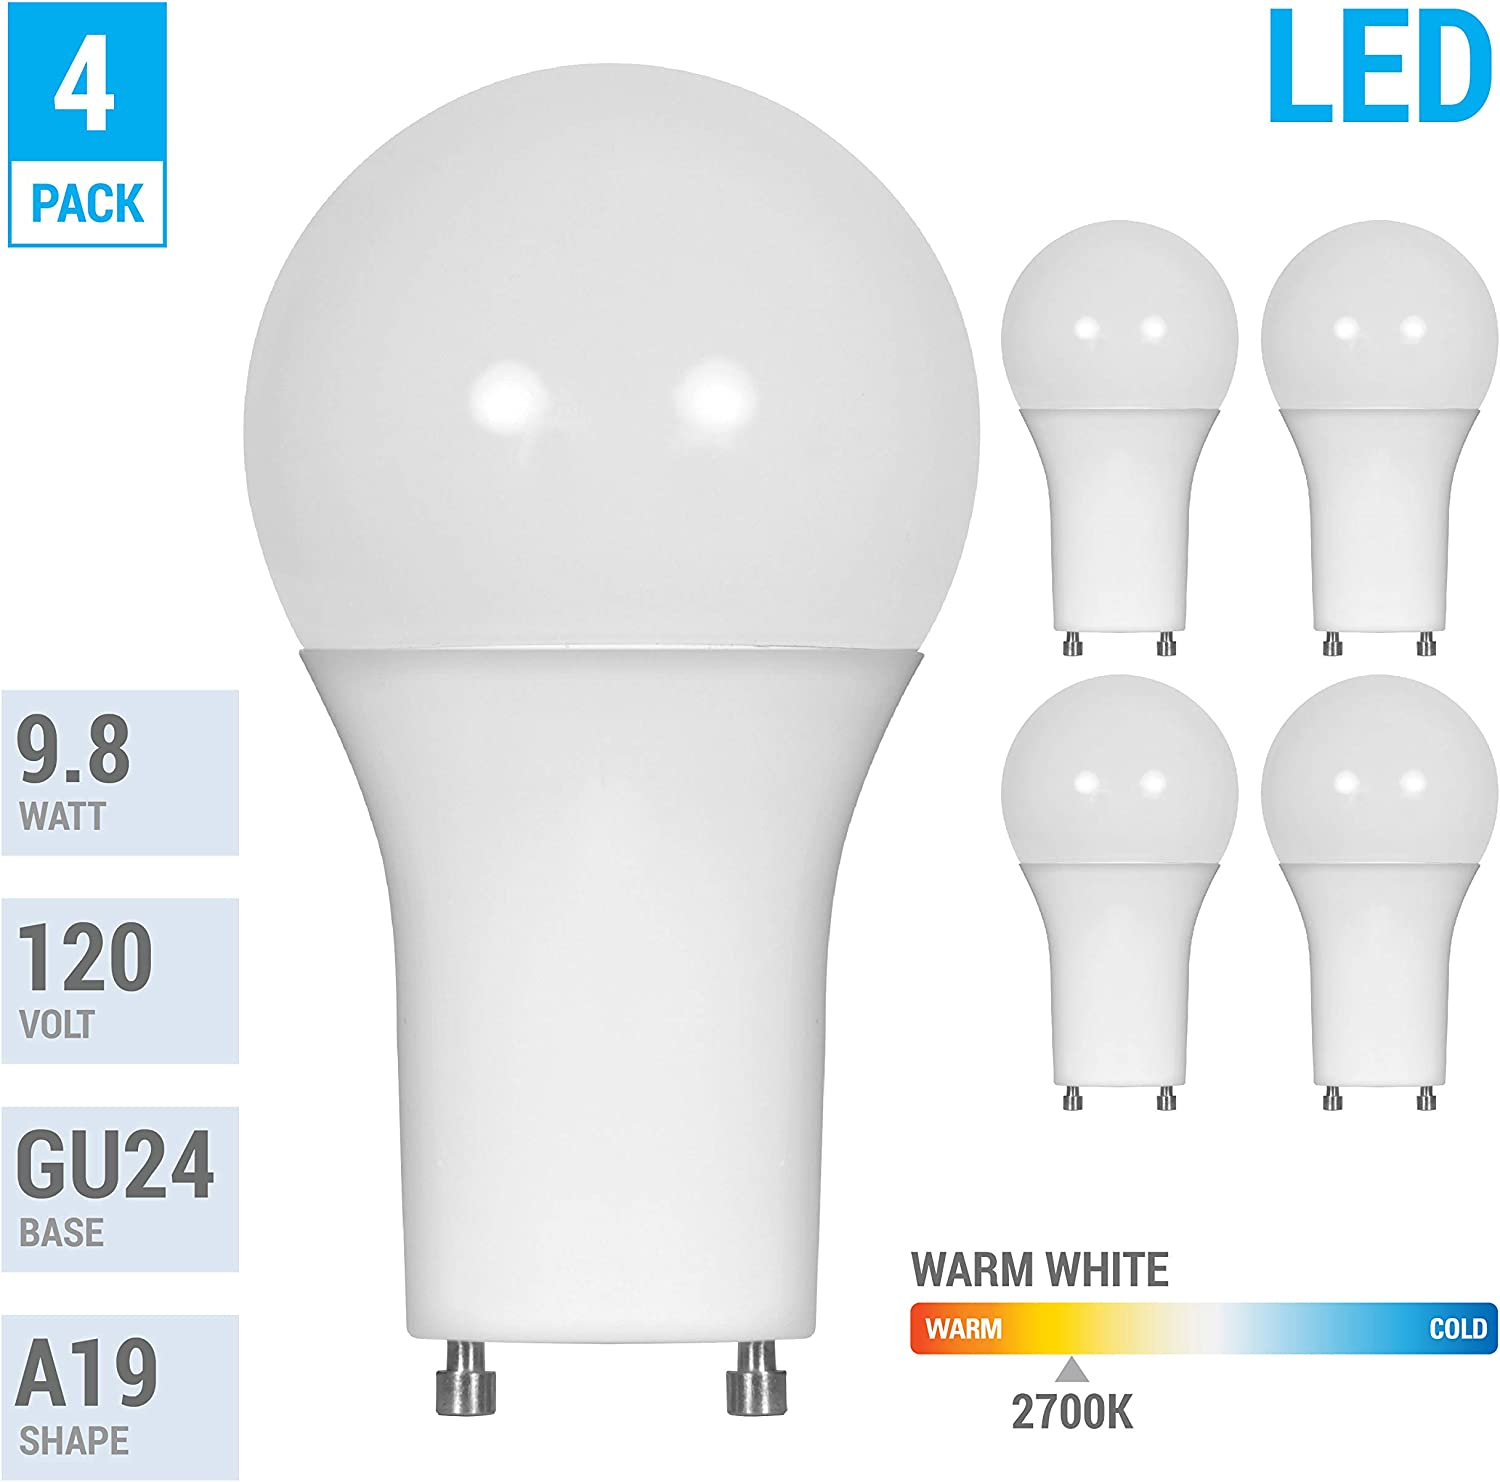 LED GU24 A19 Light Bulbs 60 Watt Equivalent, 9.5 Watt Dimmable Lights for Home with Twist & Lock Base, Replacing CFL GU24 Ceiling Light, Omni 220 Degree Beam Angle, 800 Lumen. (Warm White (2700K))